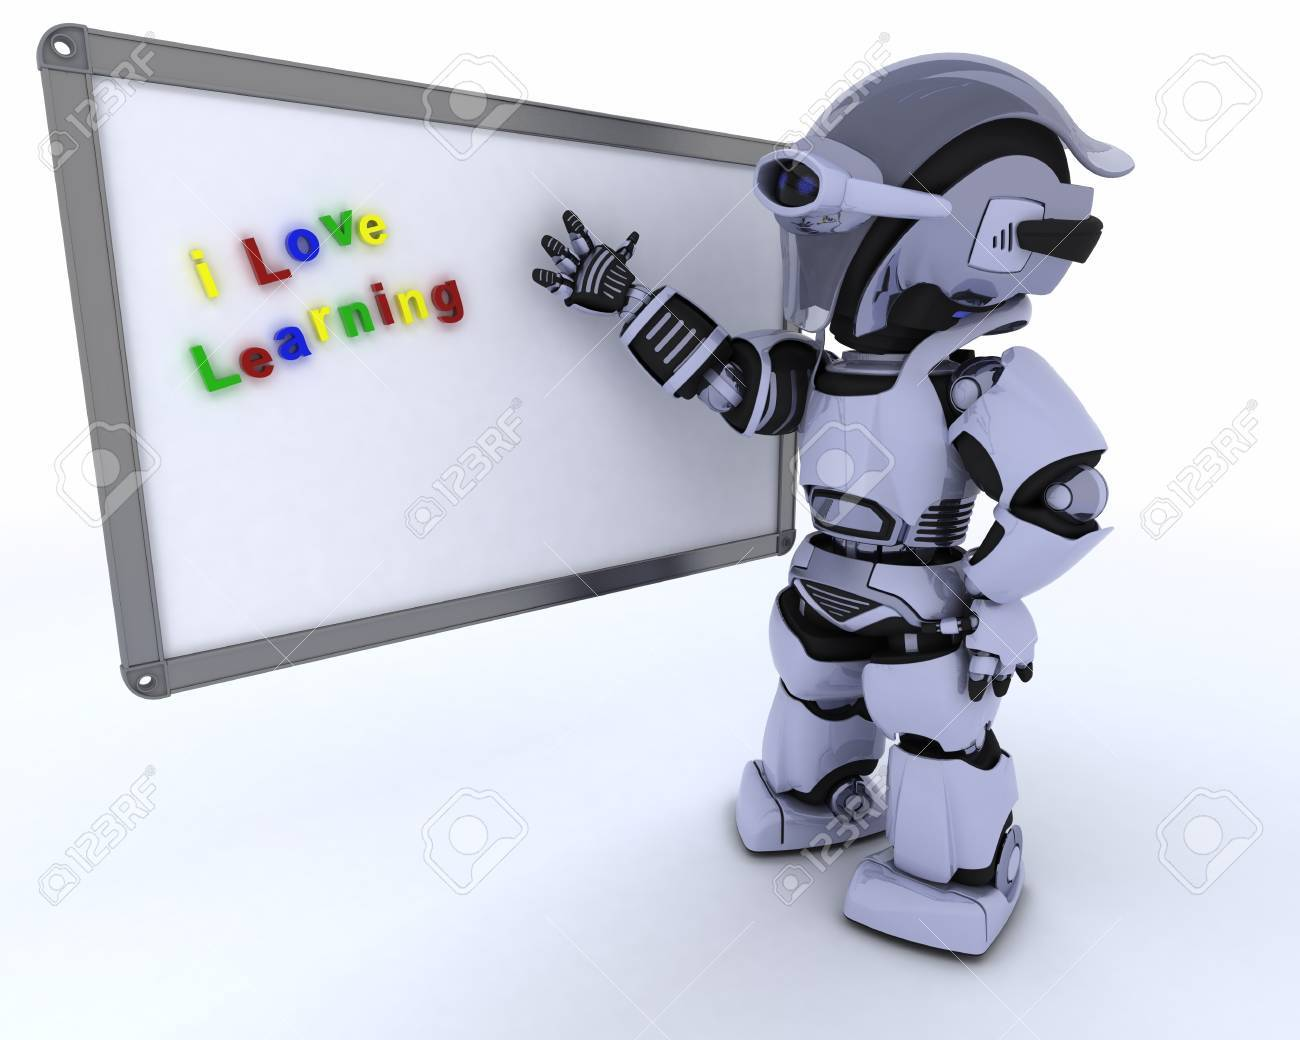 3D render of a Robot with White class room drywipe marker board Stock Photo - 15798928